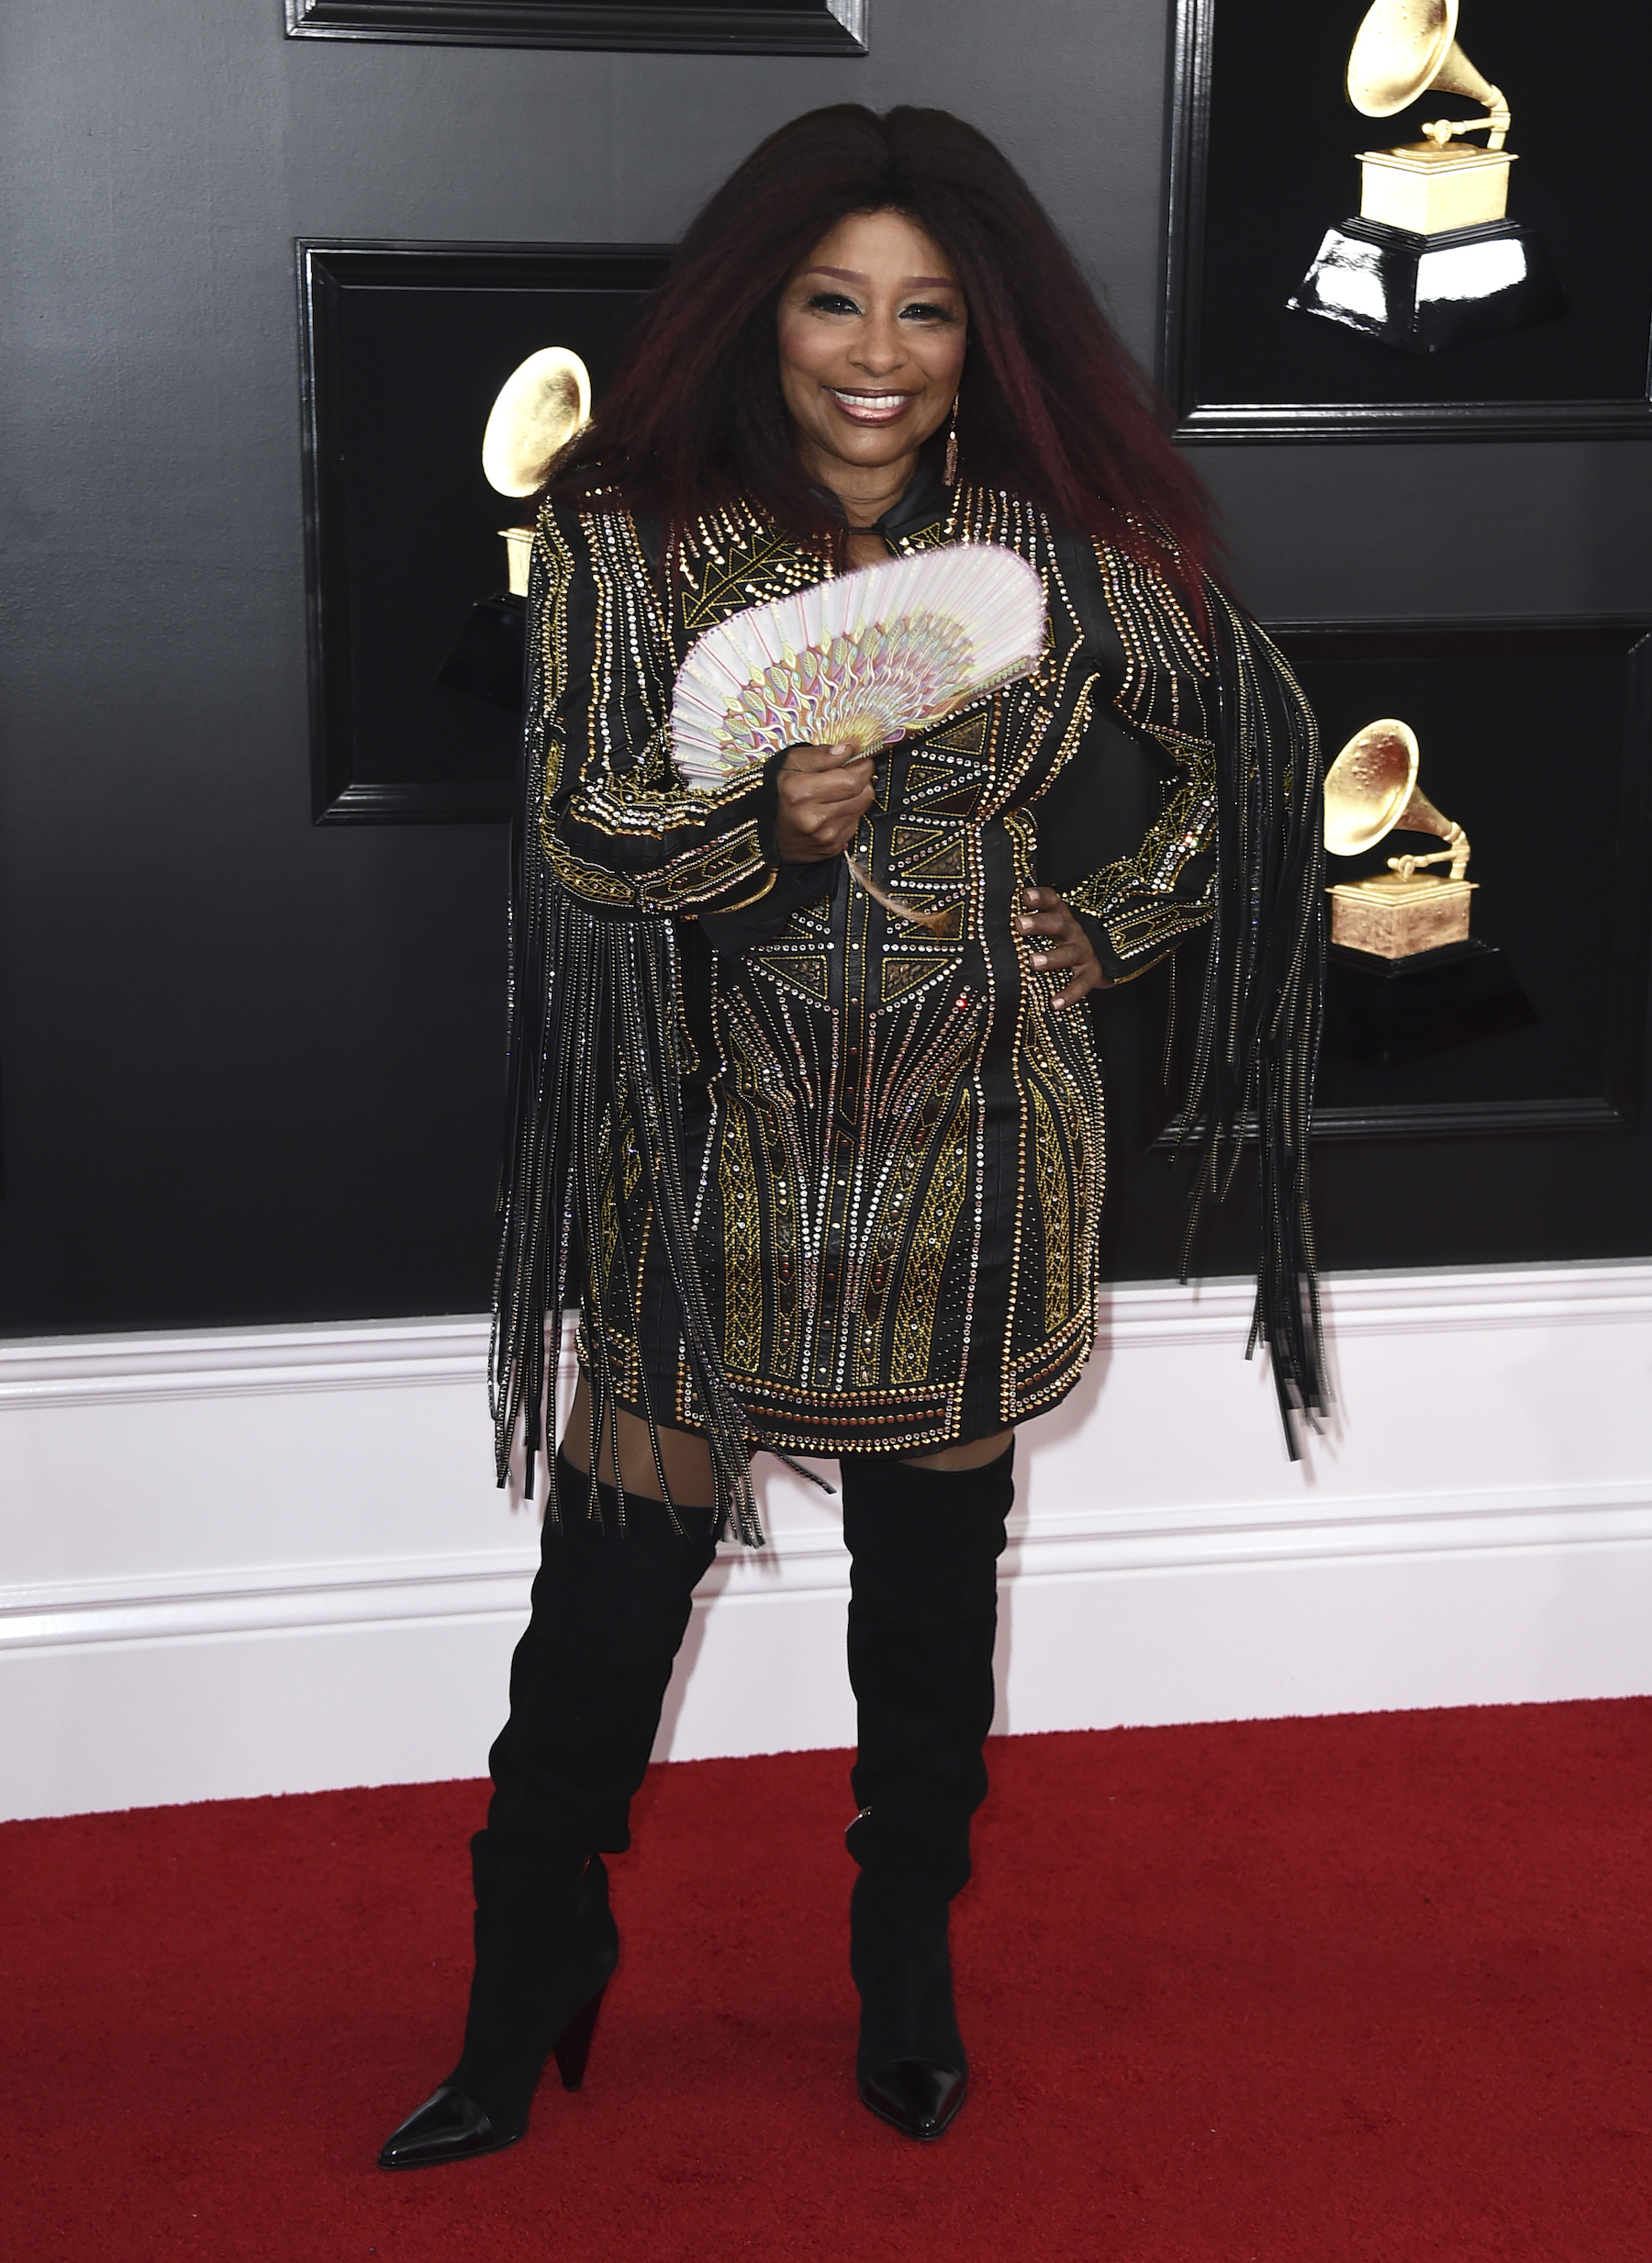 "<div class=""meta image-caption""><div class=""origin-logo origin-image ap""><span>AP</span></div><span class=""caption-text"">Chaka Khan arrives at the 61st annual Grammy Awards at the Staples Center on Sunday, Feb. 10, 2019, in Los Angeles. (Jordan Strauss/Invision/AP)</span></div>"